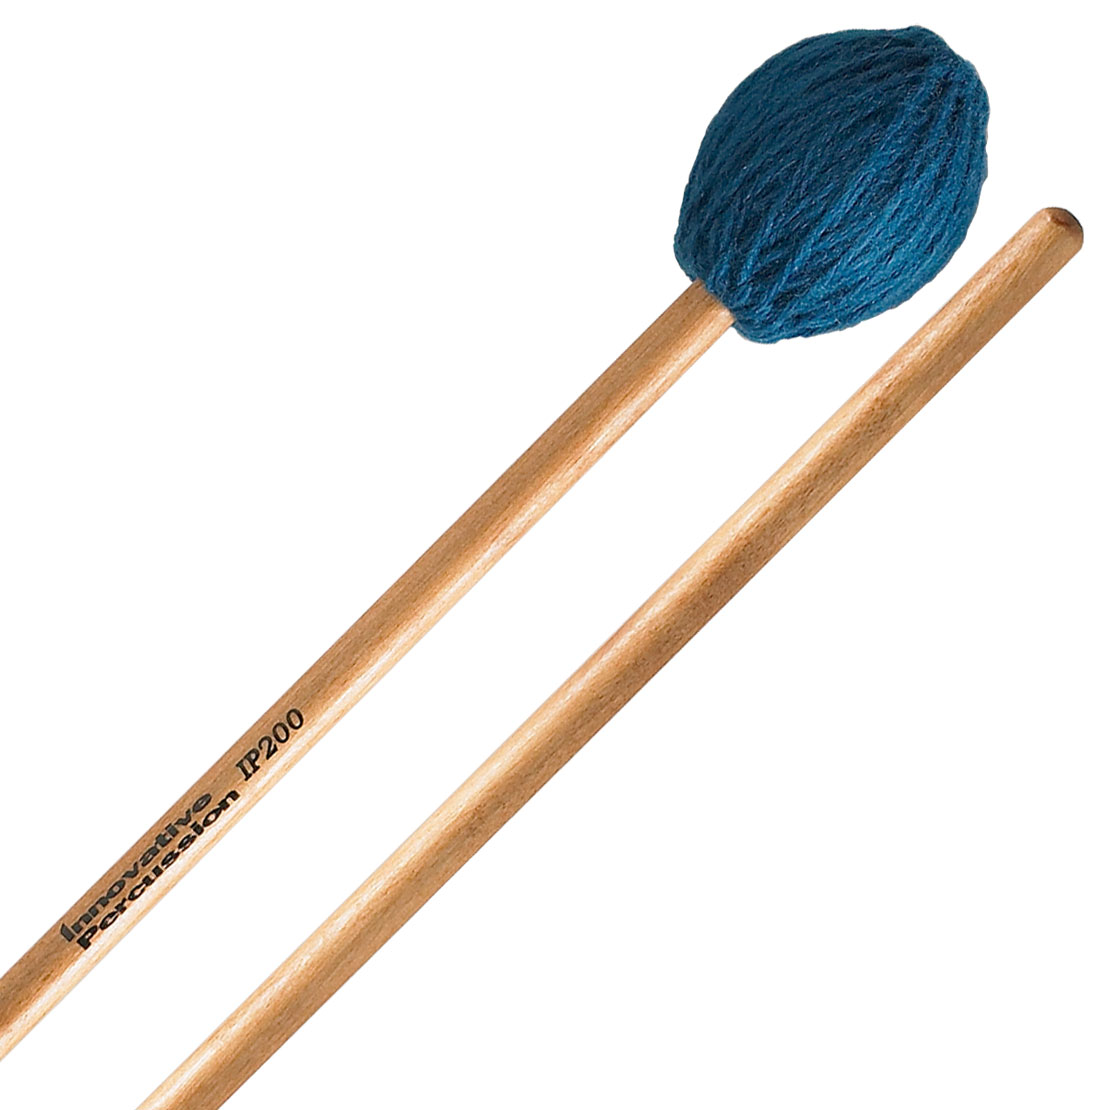 Innovative Percussion IP200 Soloist Series Medium Soft Marimba Mallets with Lacquered Birch Shafts